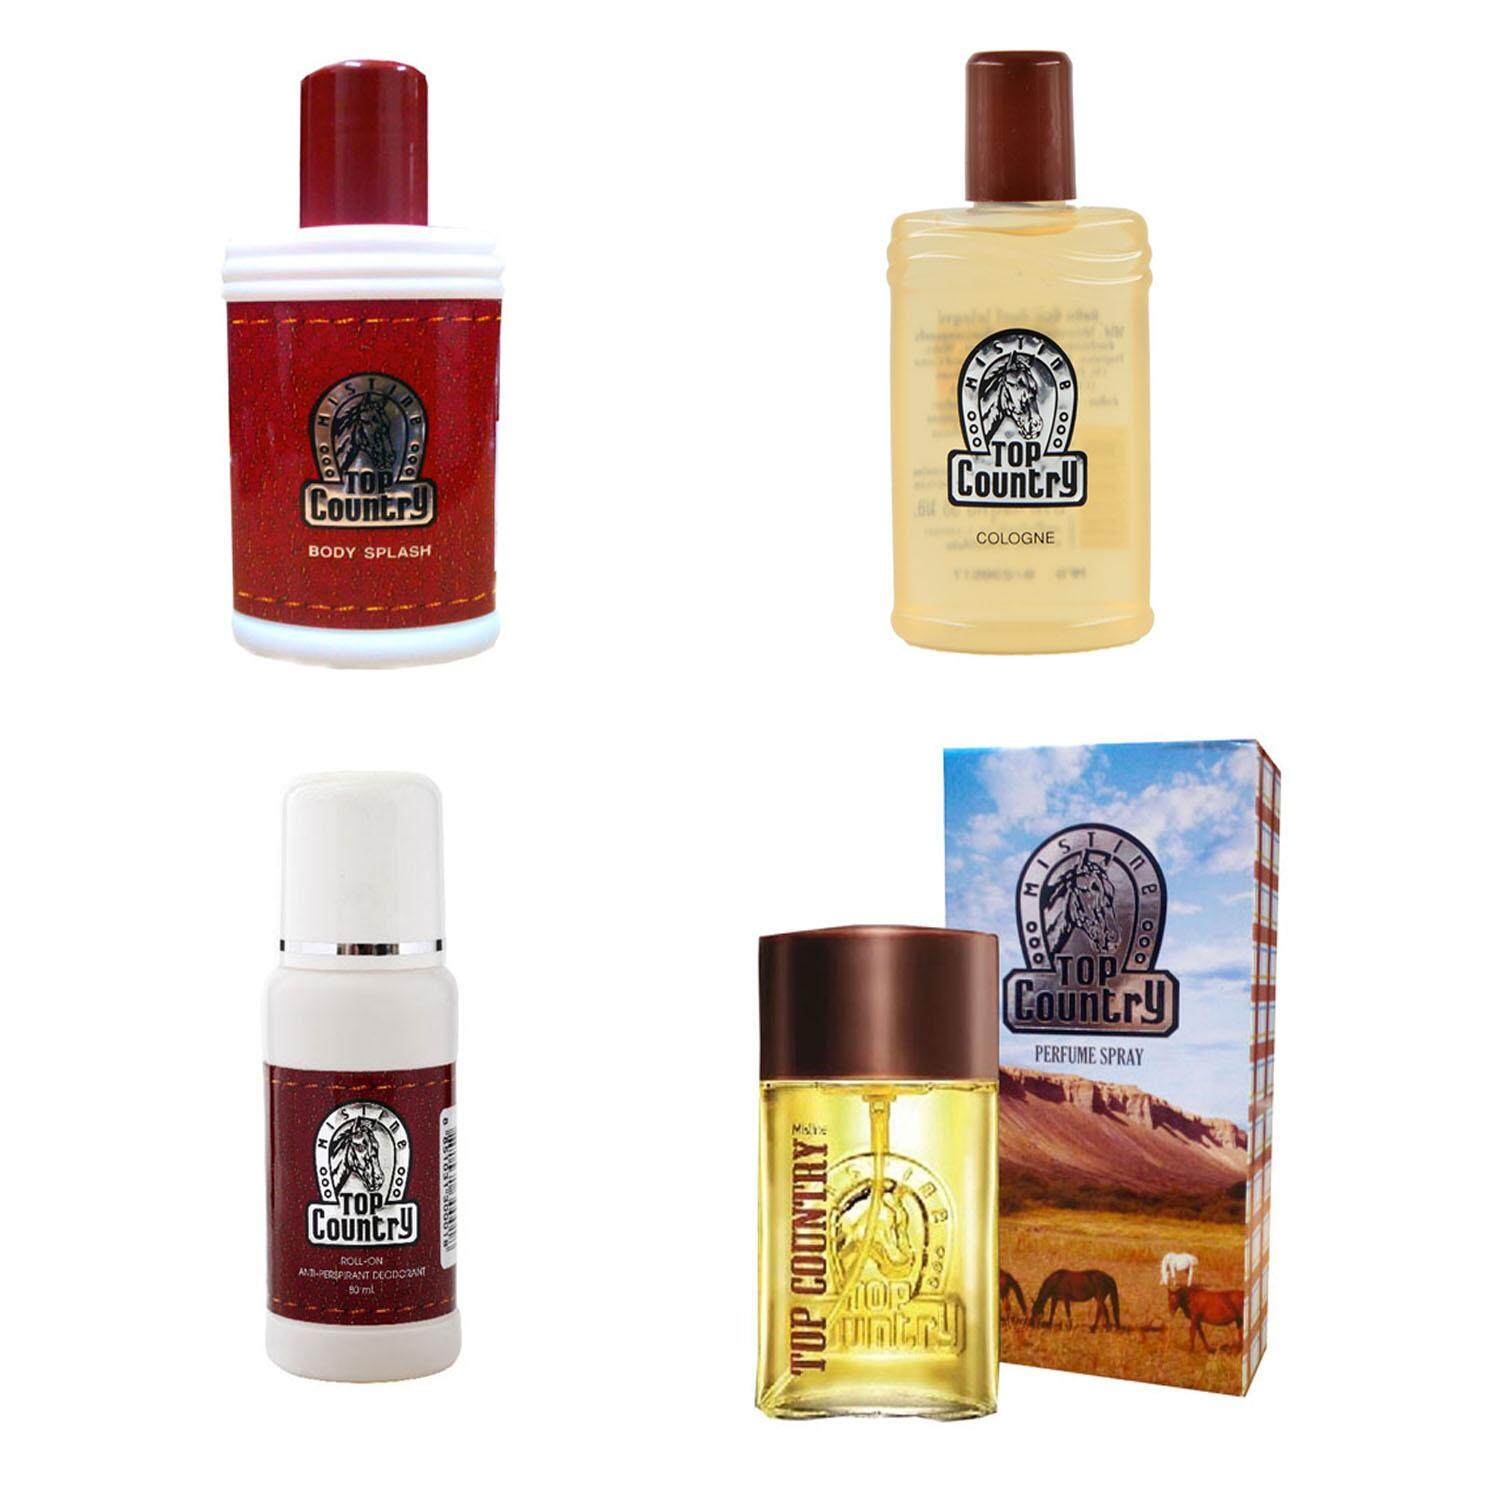 Mistine Top Country Body Splash,Perfume Spray,Cologne and Roll-on มิสมีนน้ำหอม ท็อป คันทรี